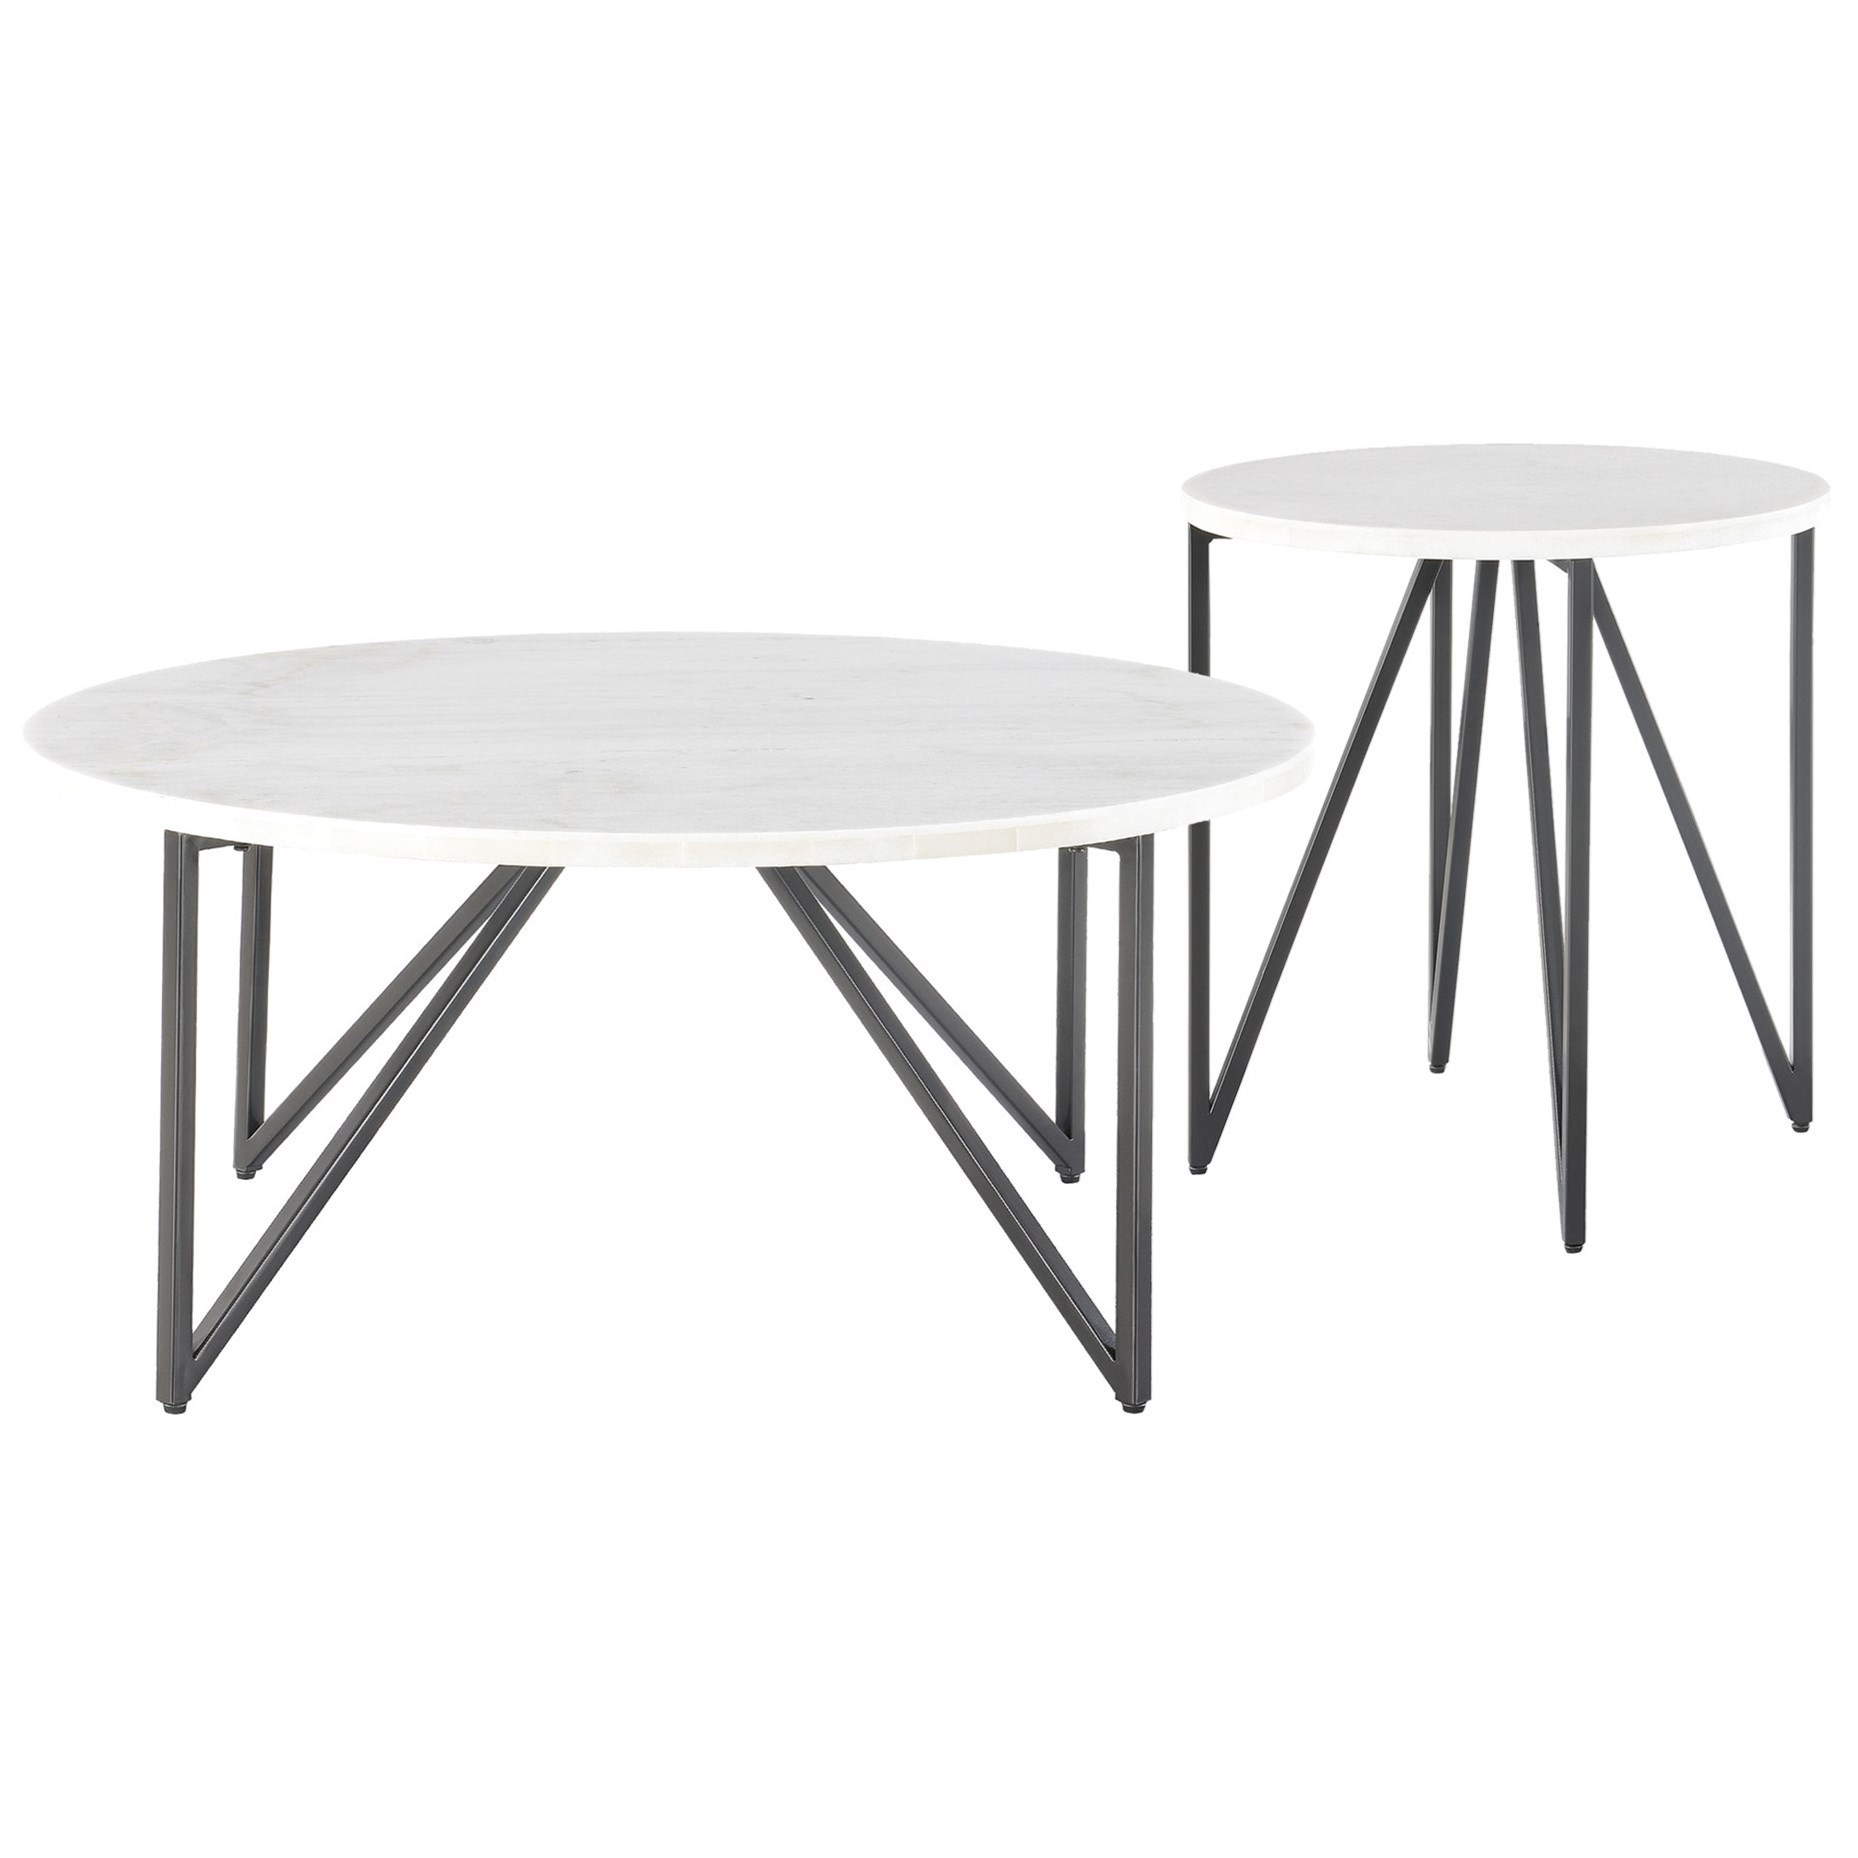 2 Piece Occasional Table Set